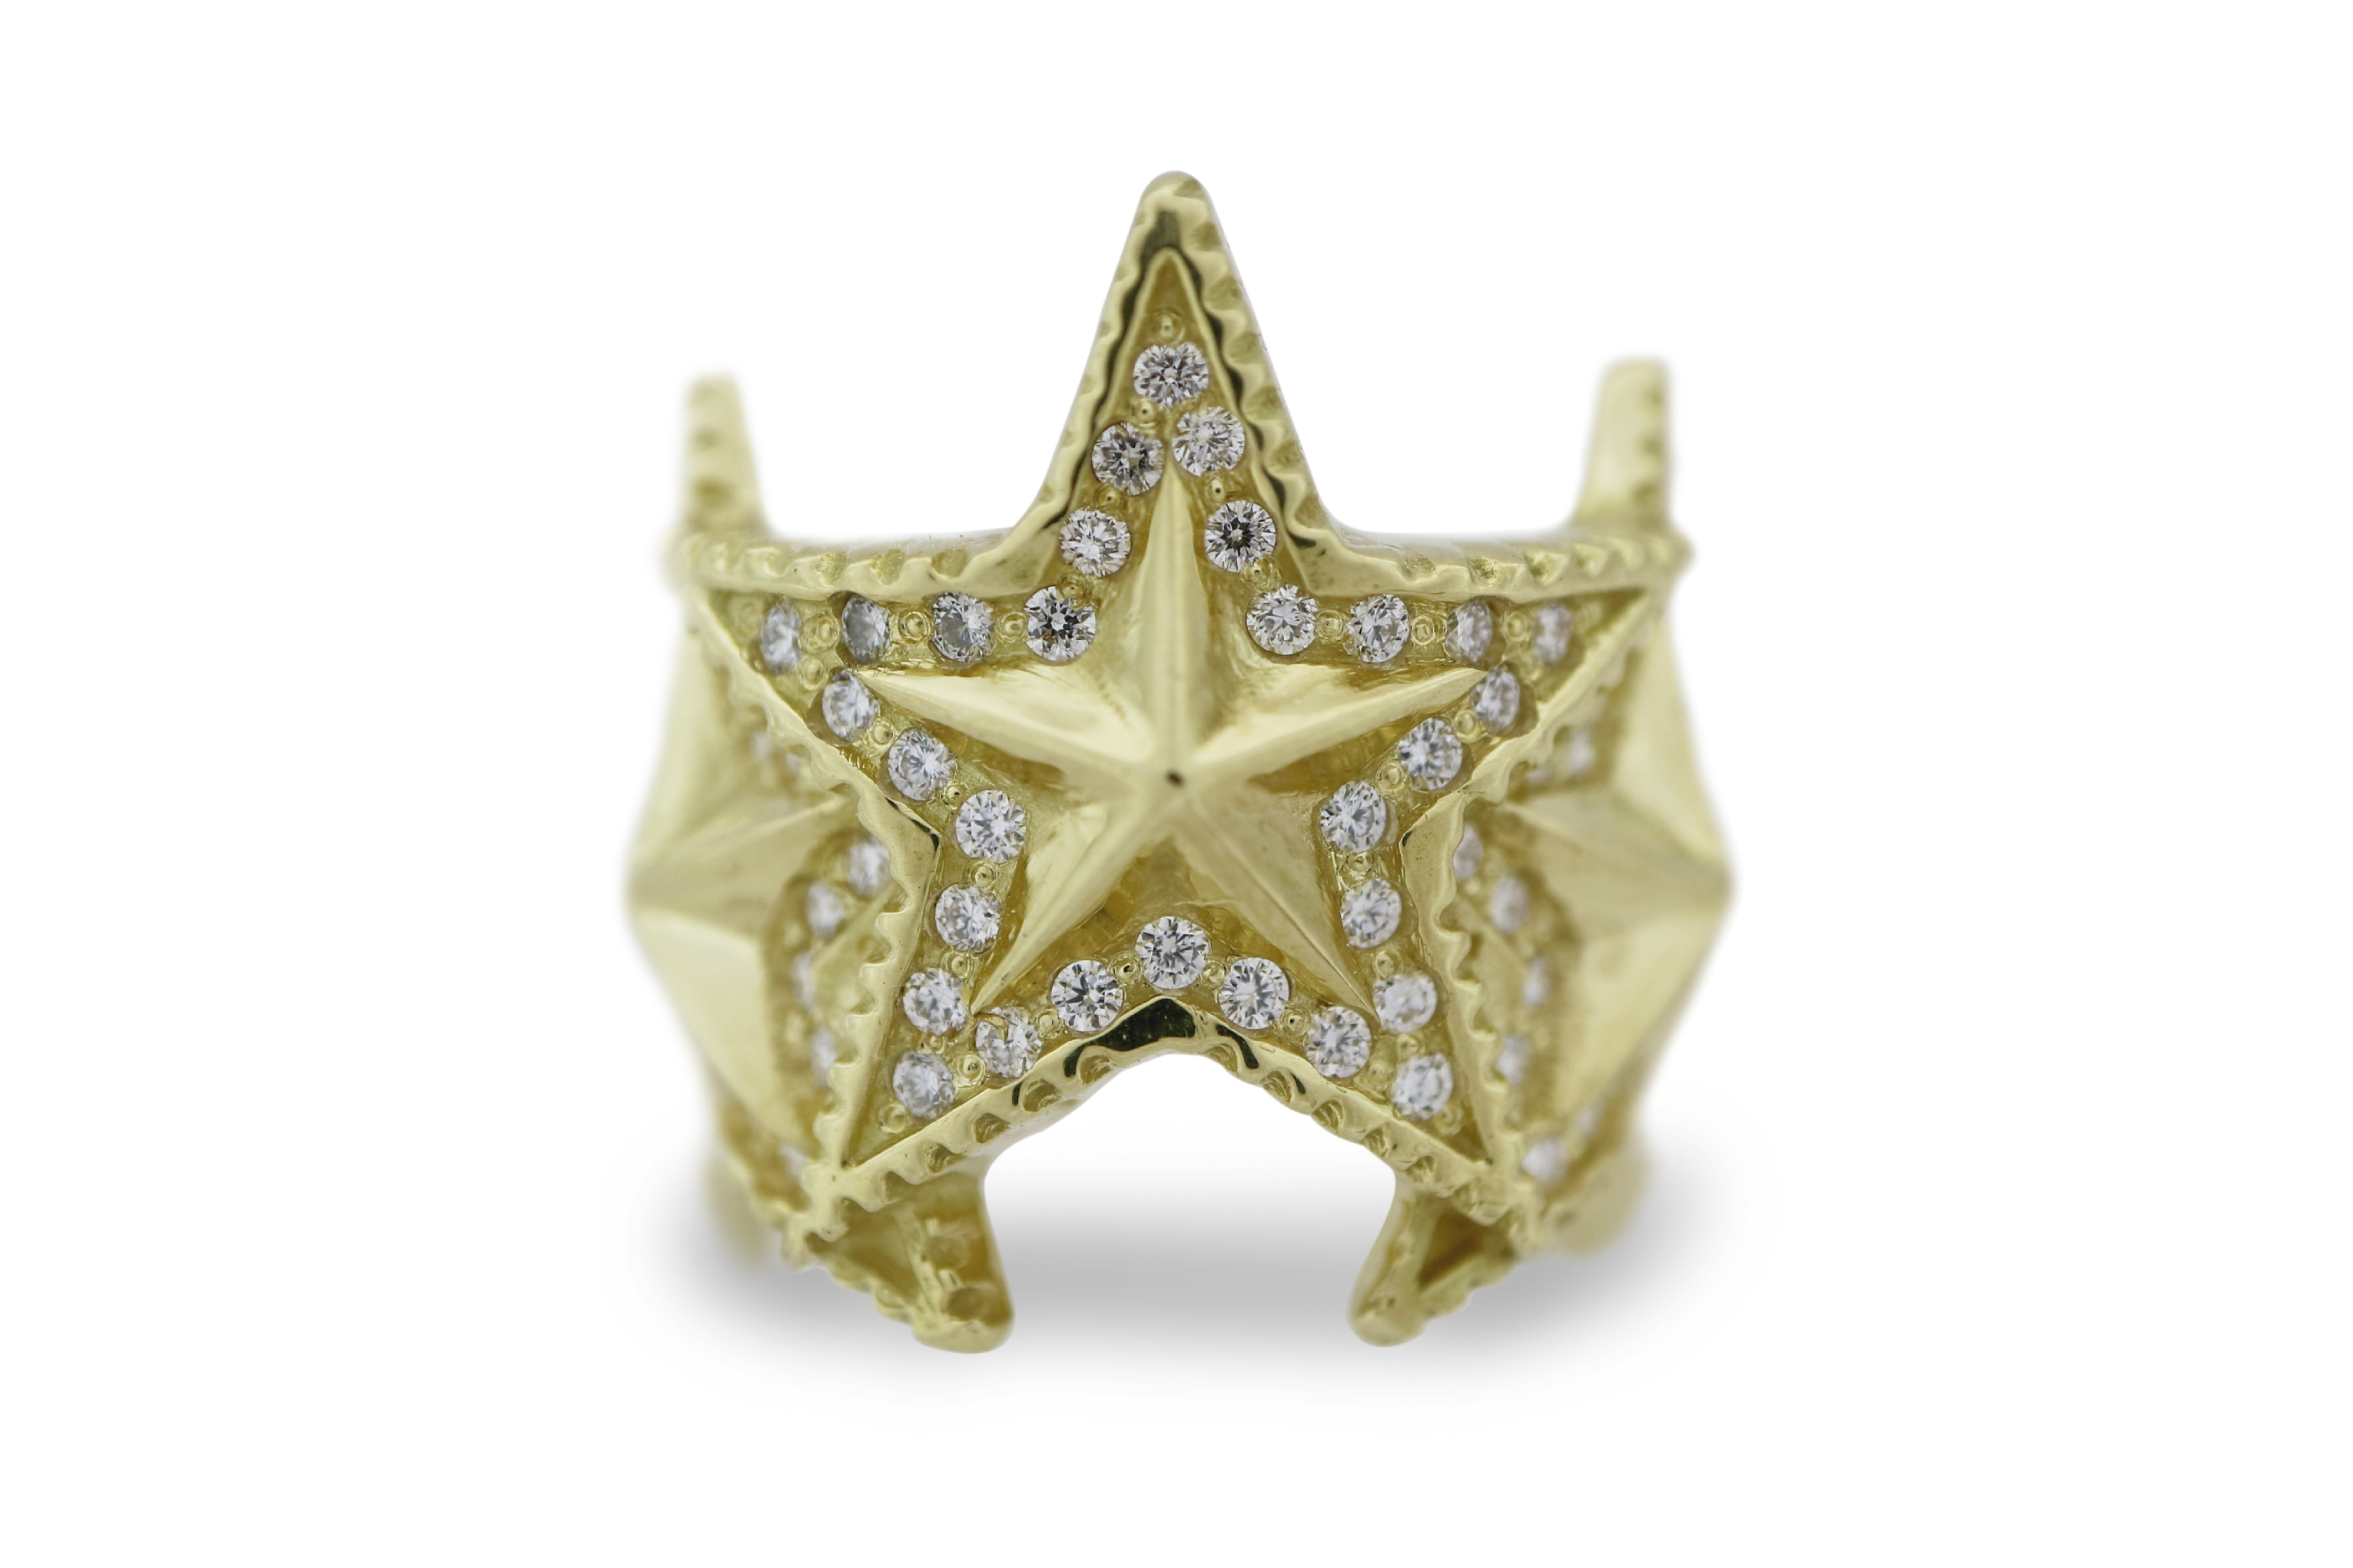 3 INTERLOCKING STAR RING 18K GOLD / DIAMONDS - VIP EXCLUSIVE